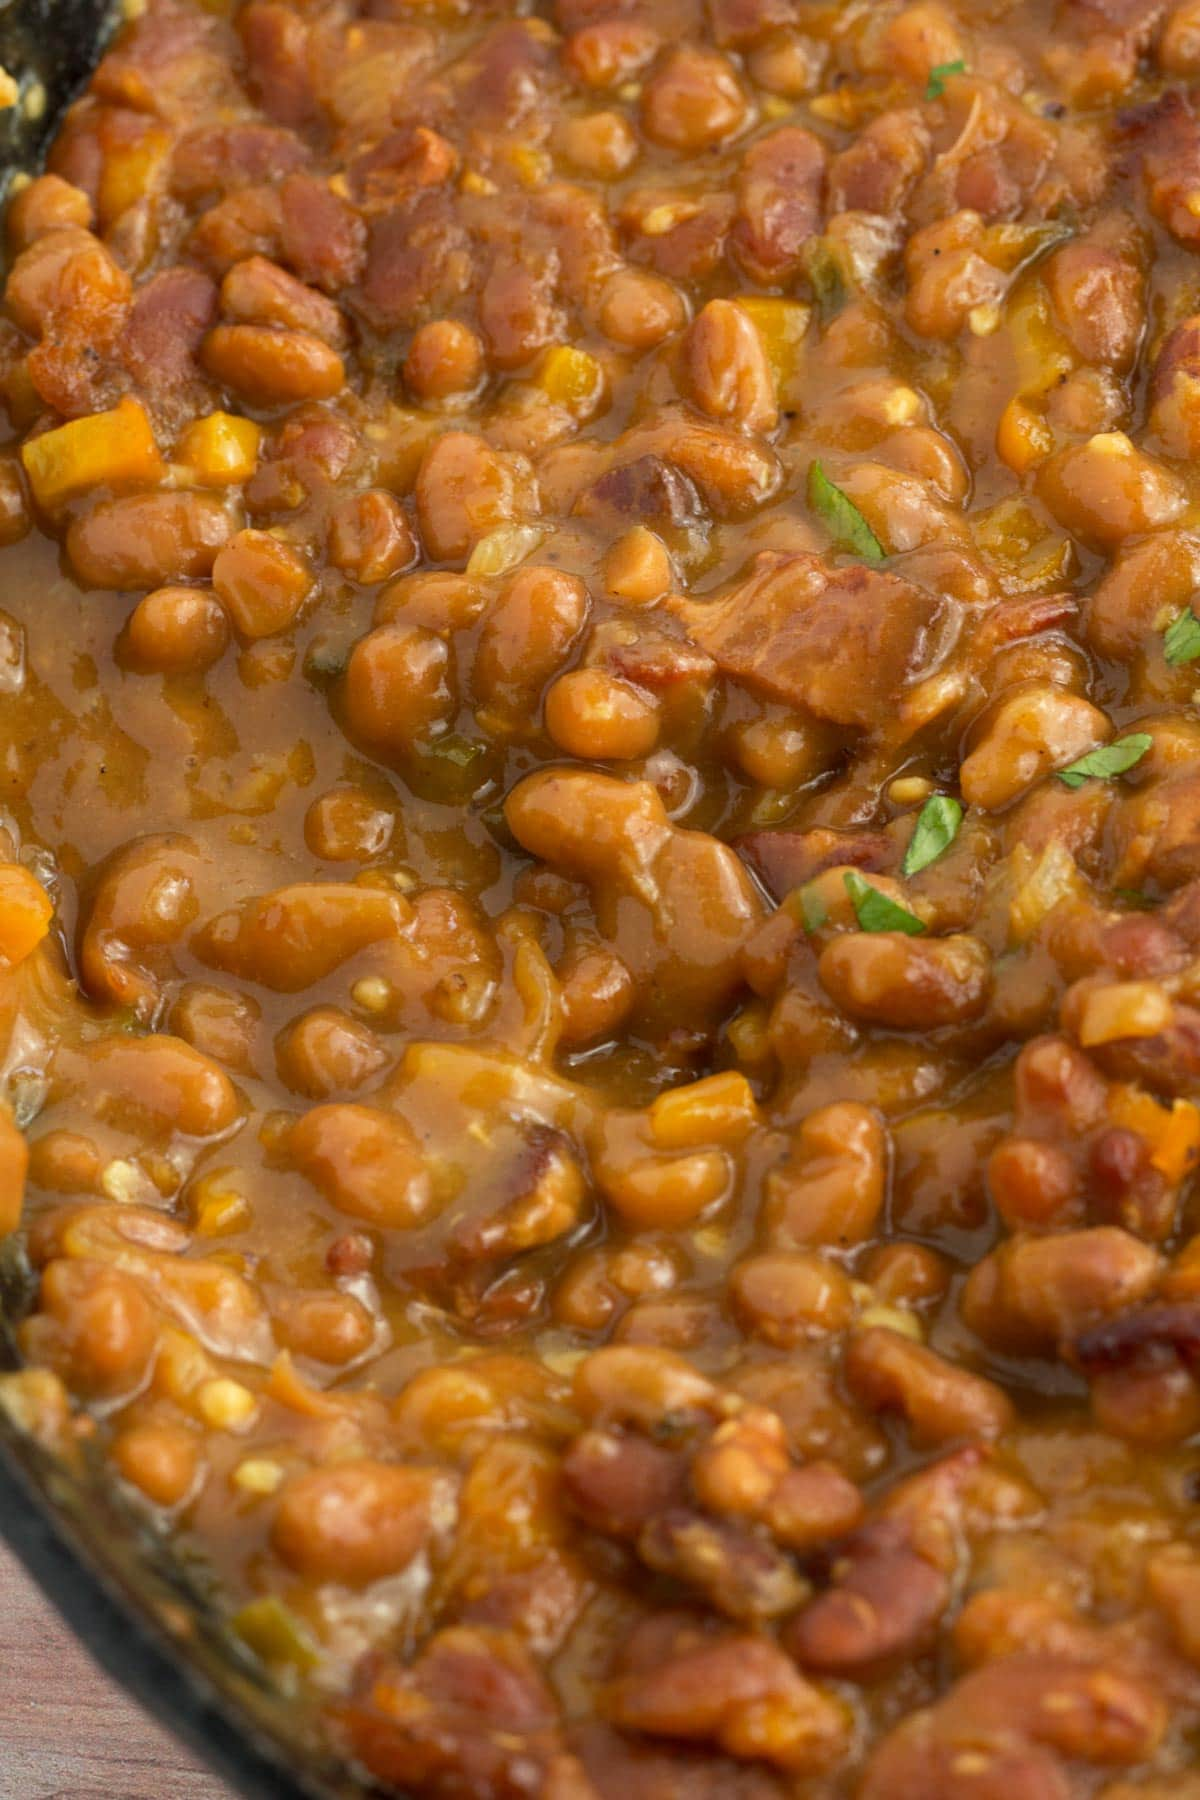 Upclose baked beans in cast iron skillet with pieces of bacon showing.